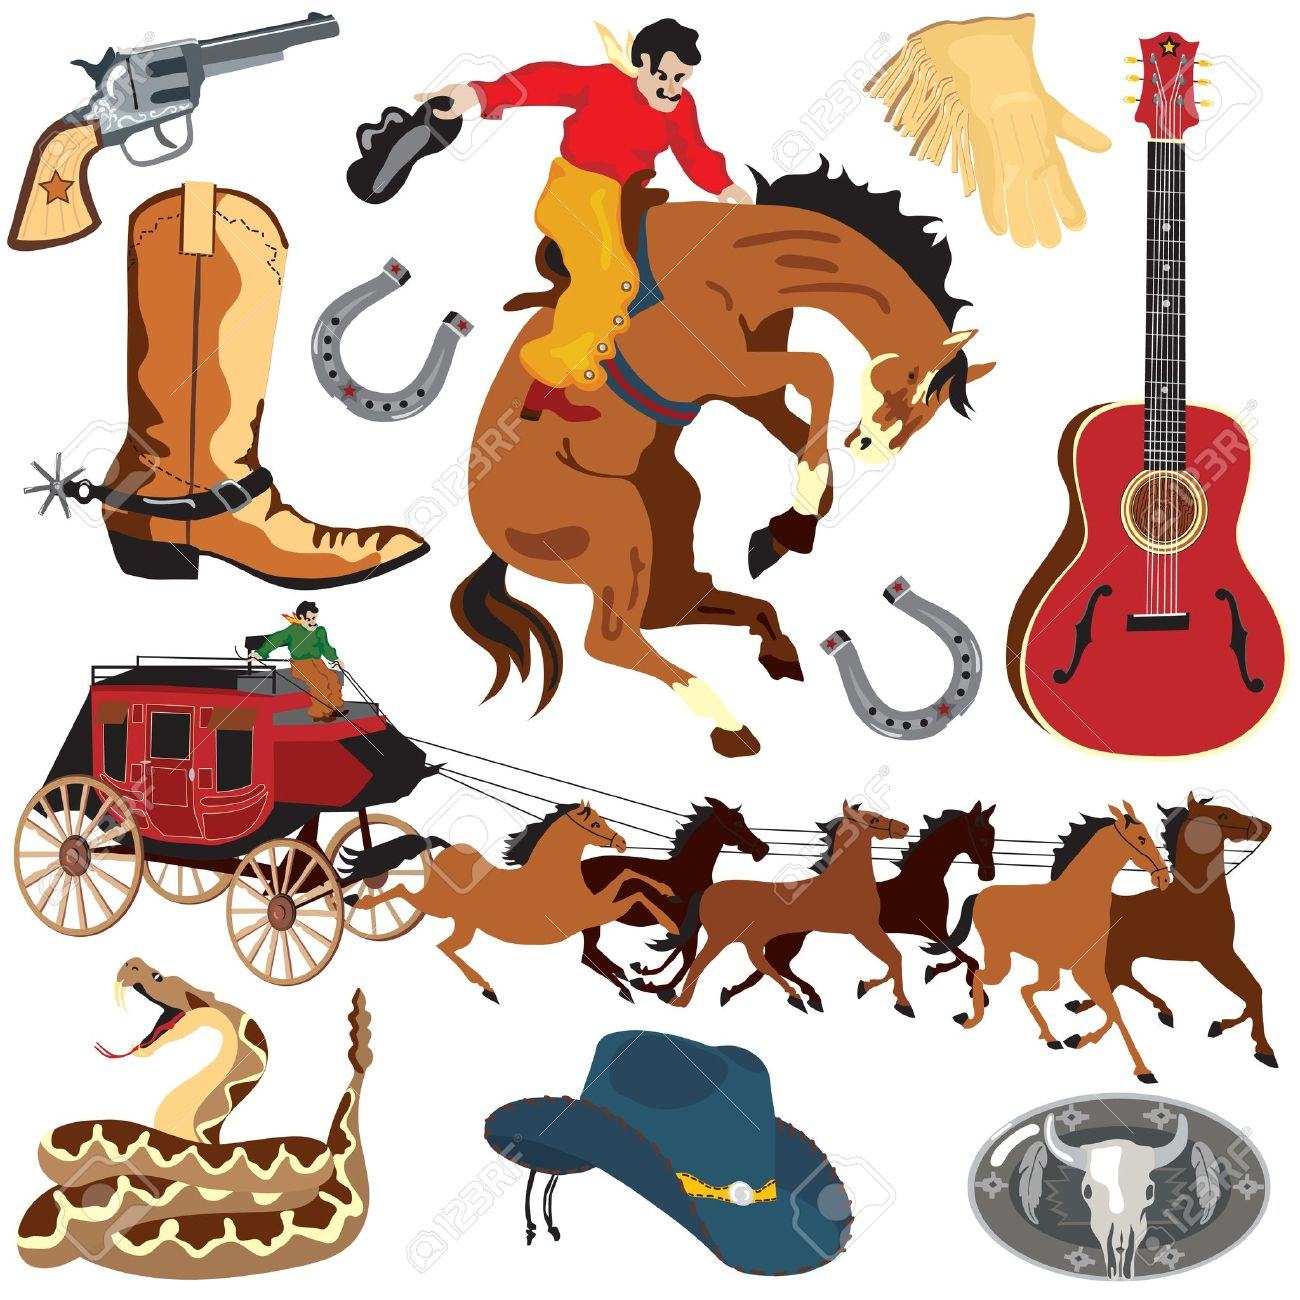 Wild west pictures clip art.